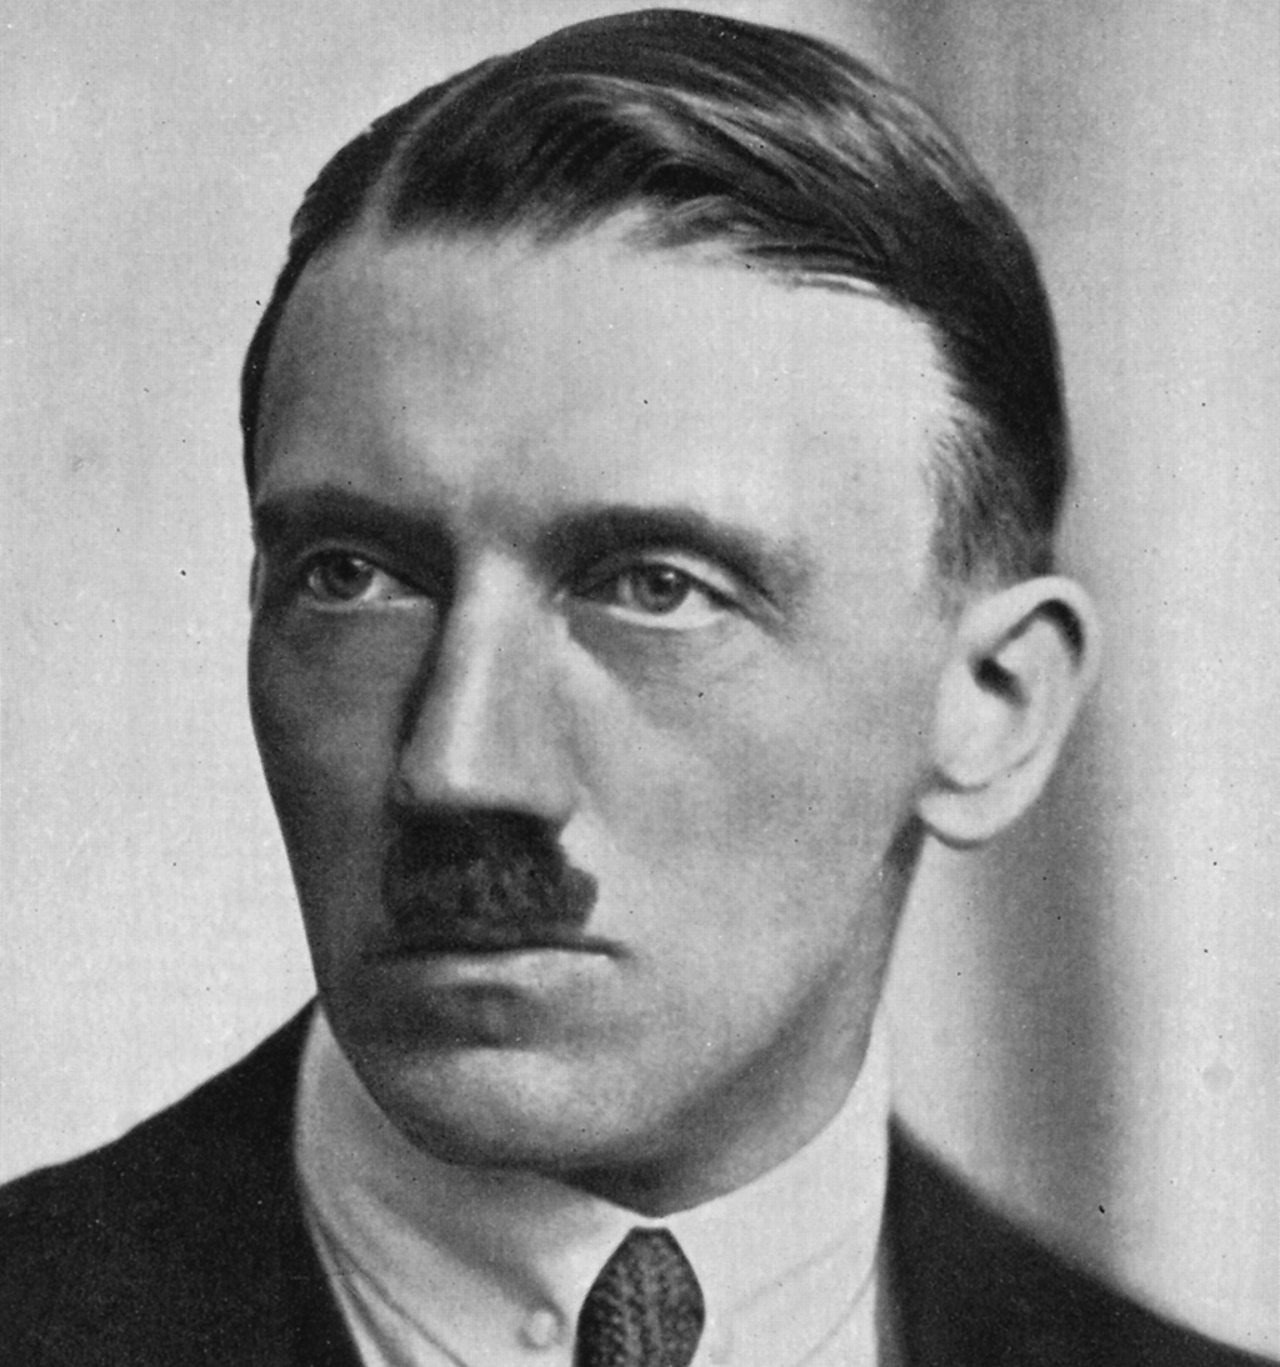 Hitler and his distinctive toothbrush moustache.